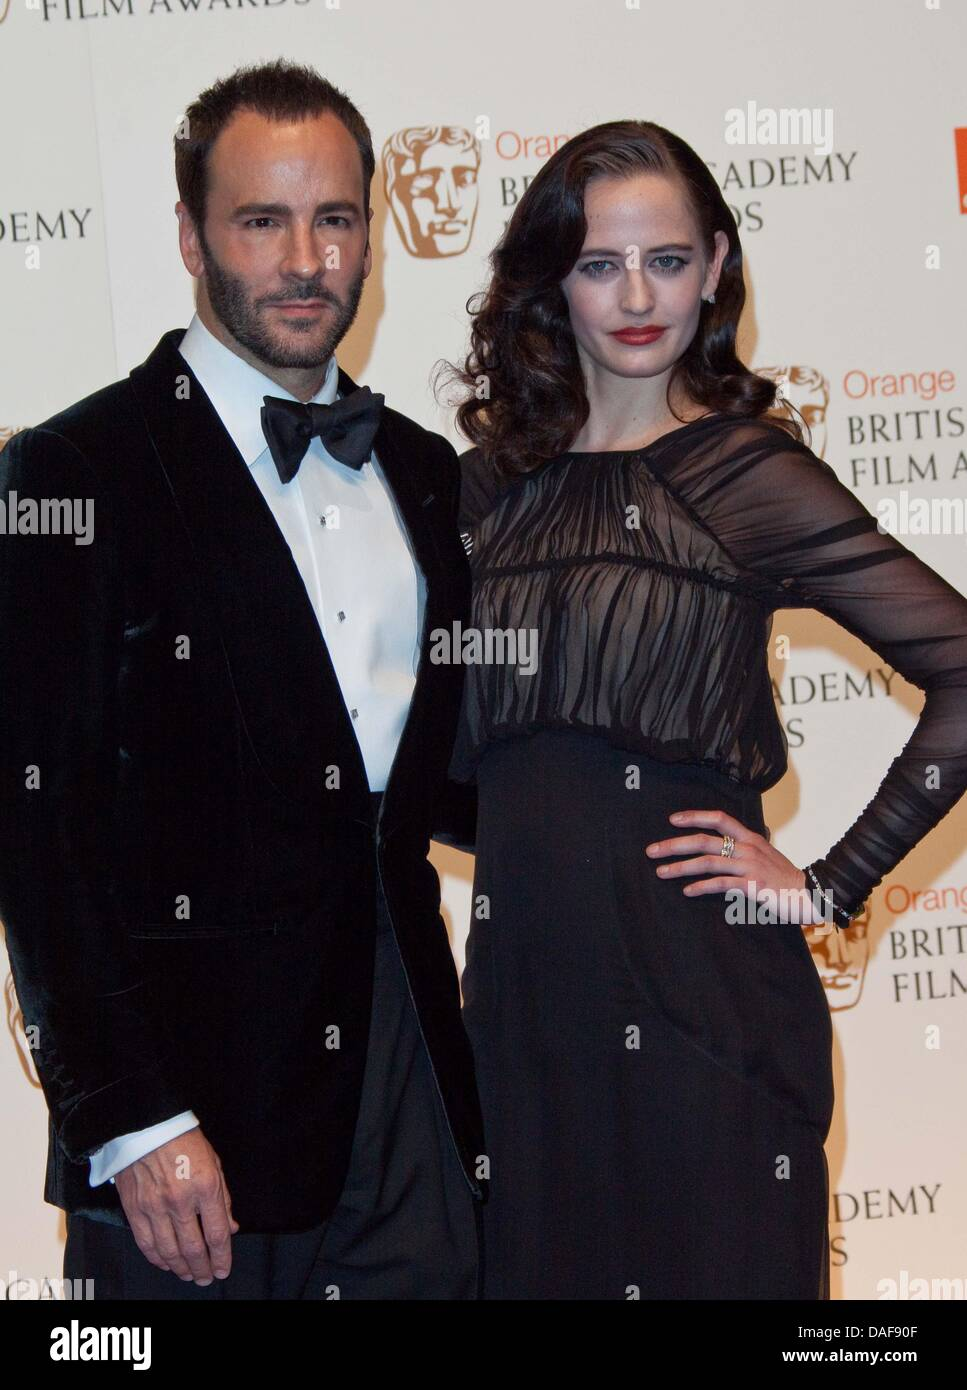 Director And Fashion Designer Tom Ford And French Actress Eva Green Stock Photo Alamy